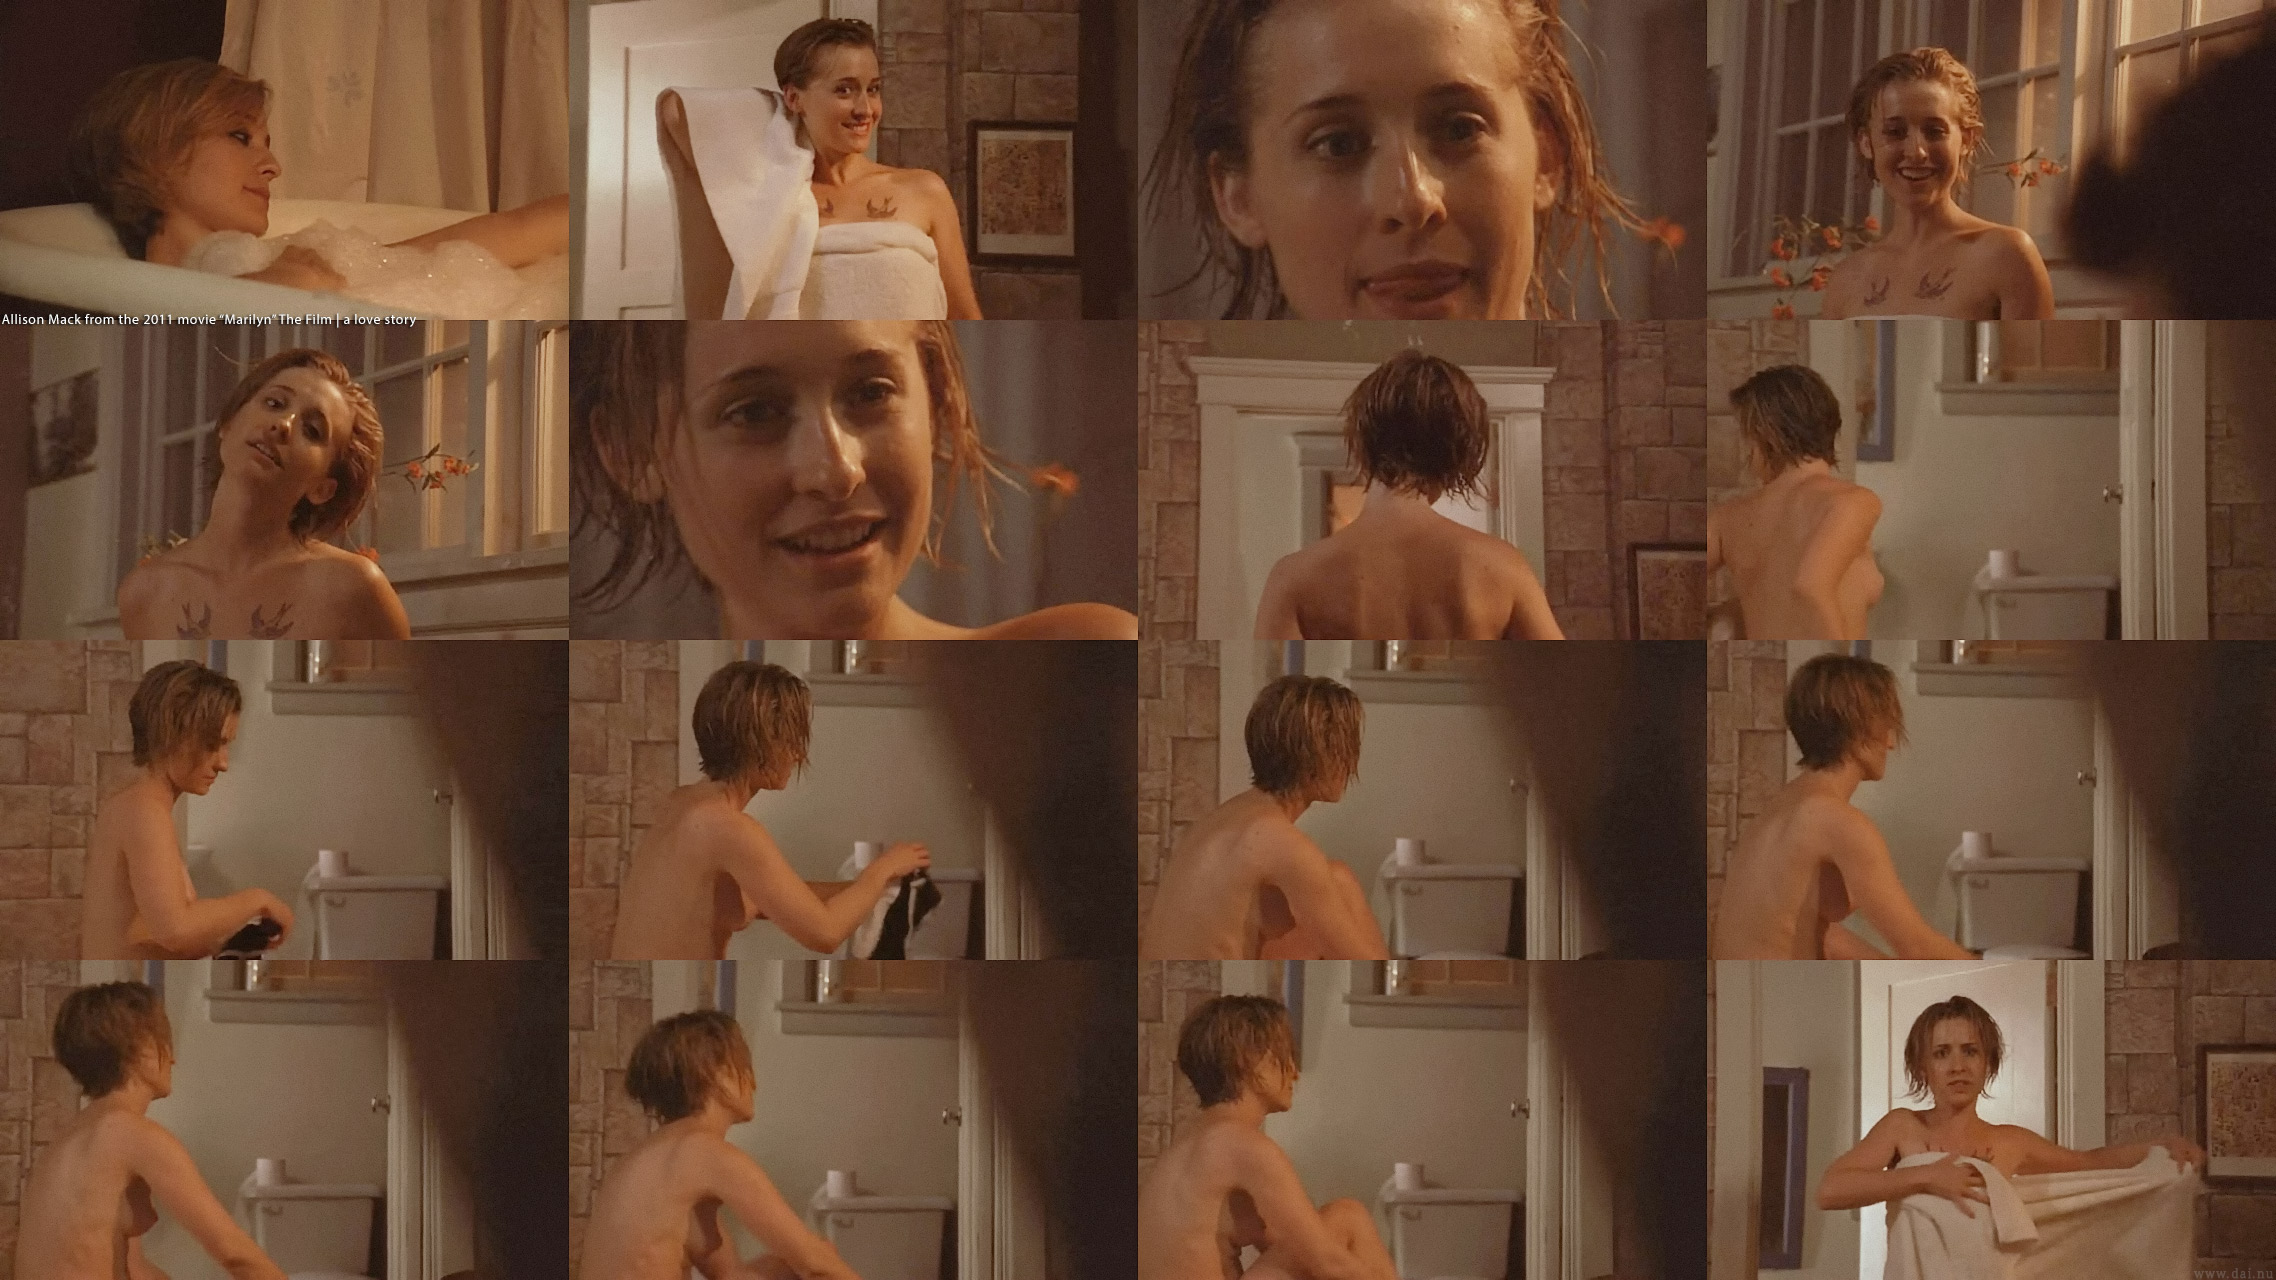 Allison Mack nude pics in Marilyn film (8)